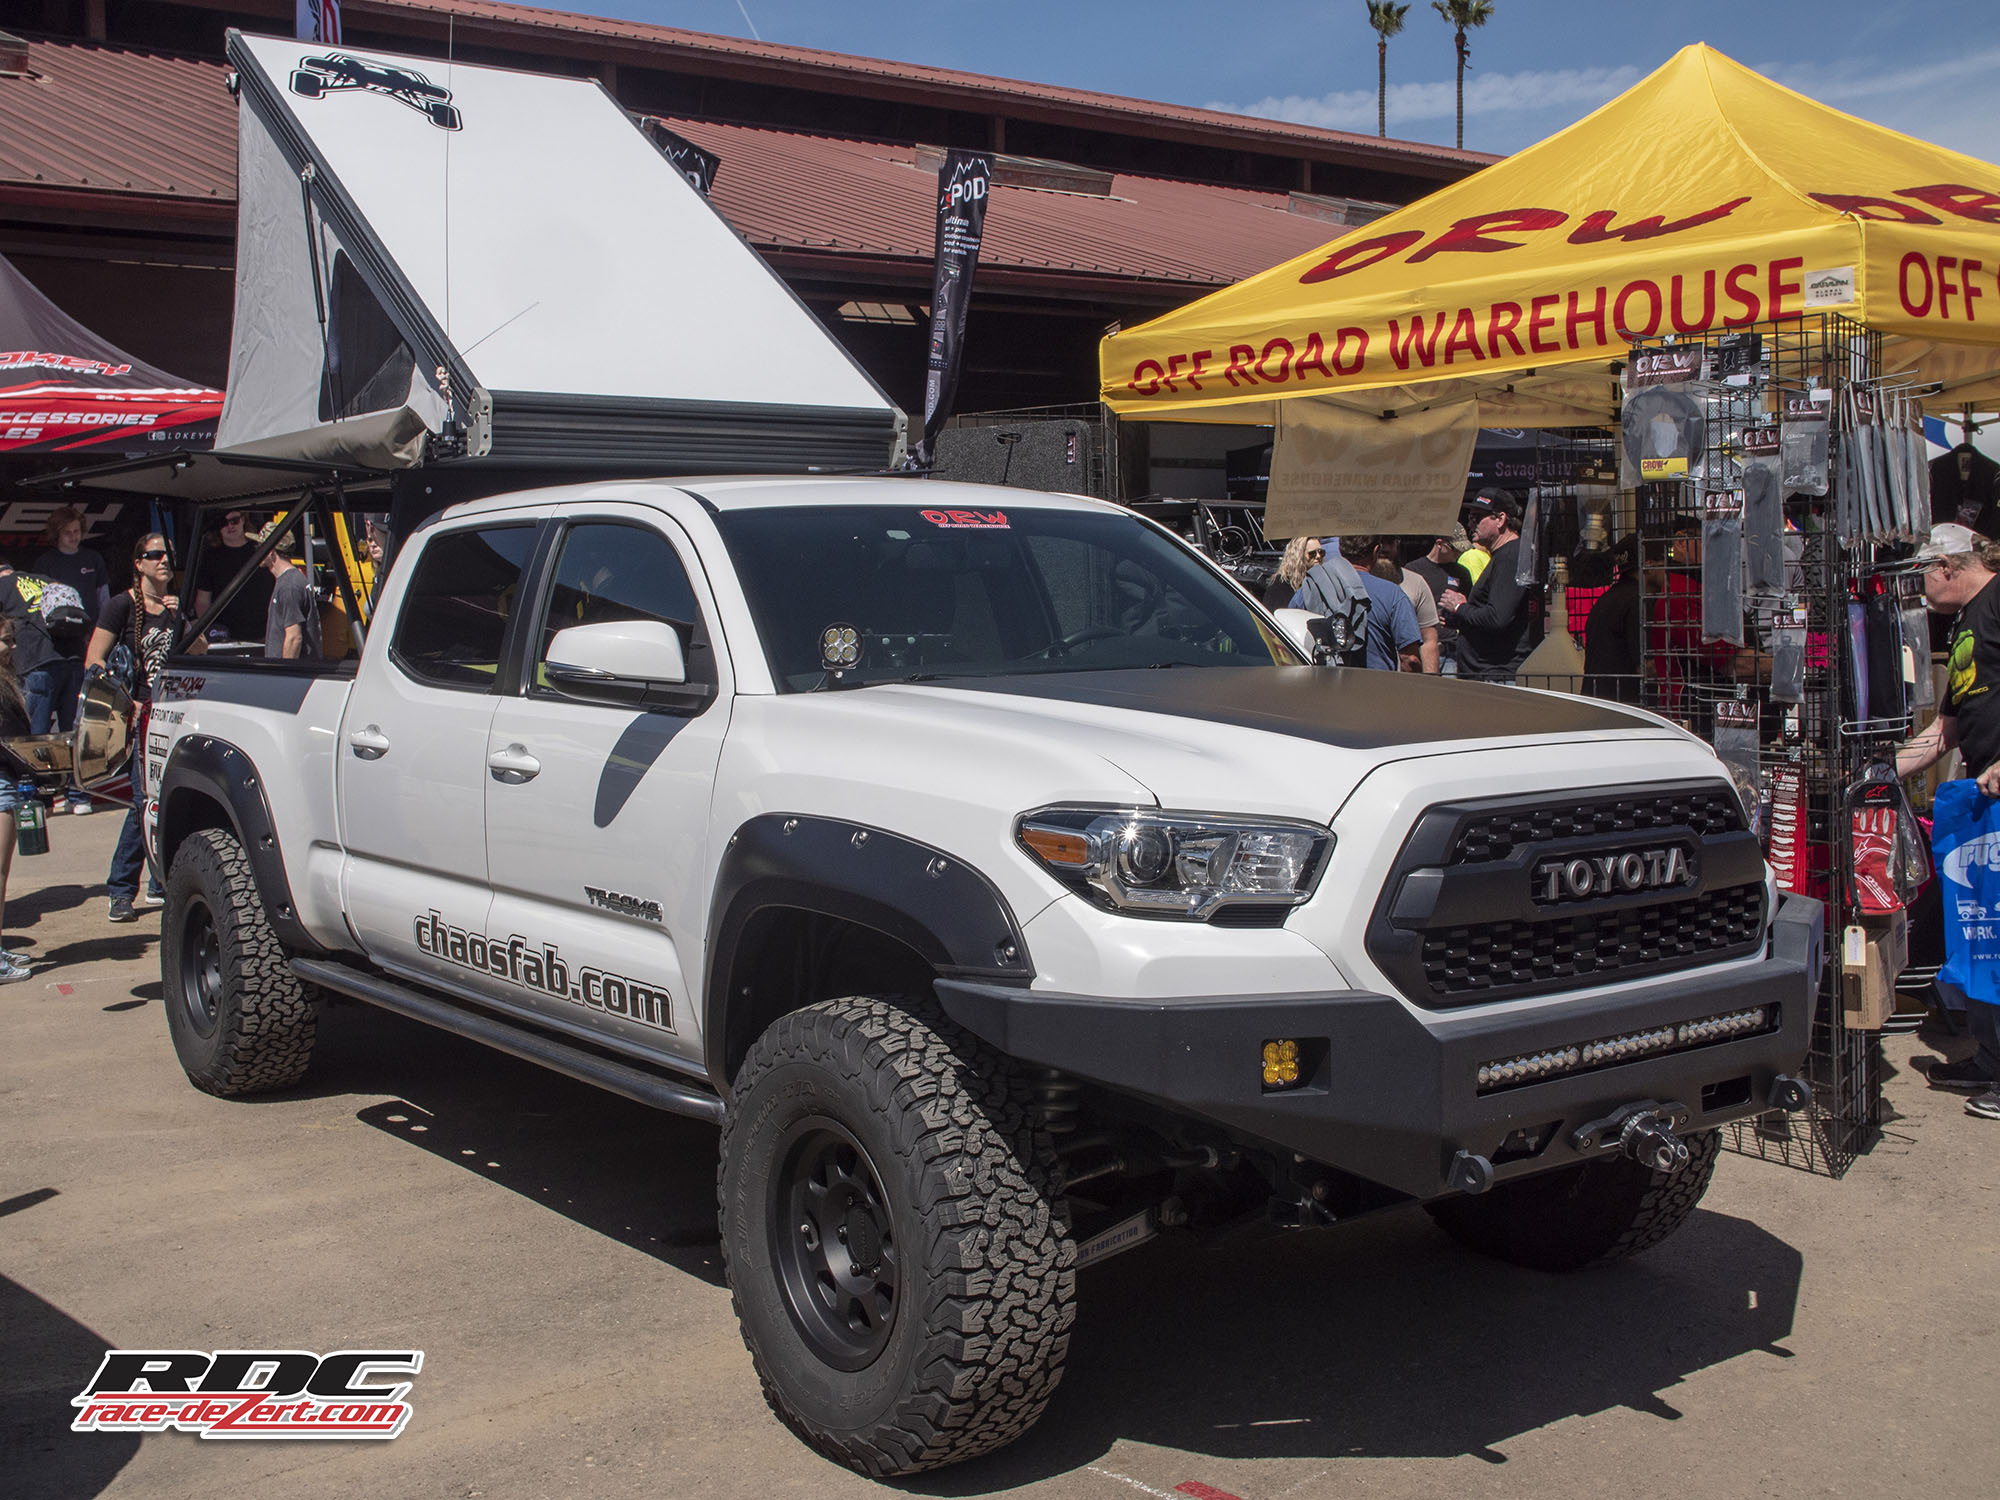 2019 Off Road Nights Expo Video and Photos – race-deZert com